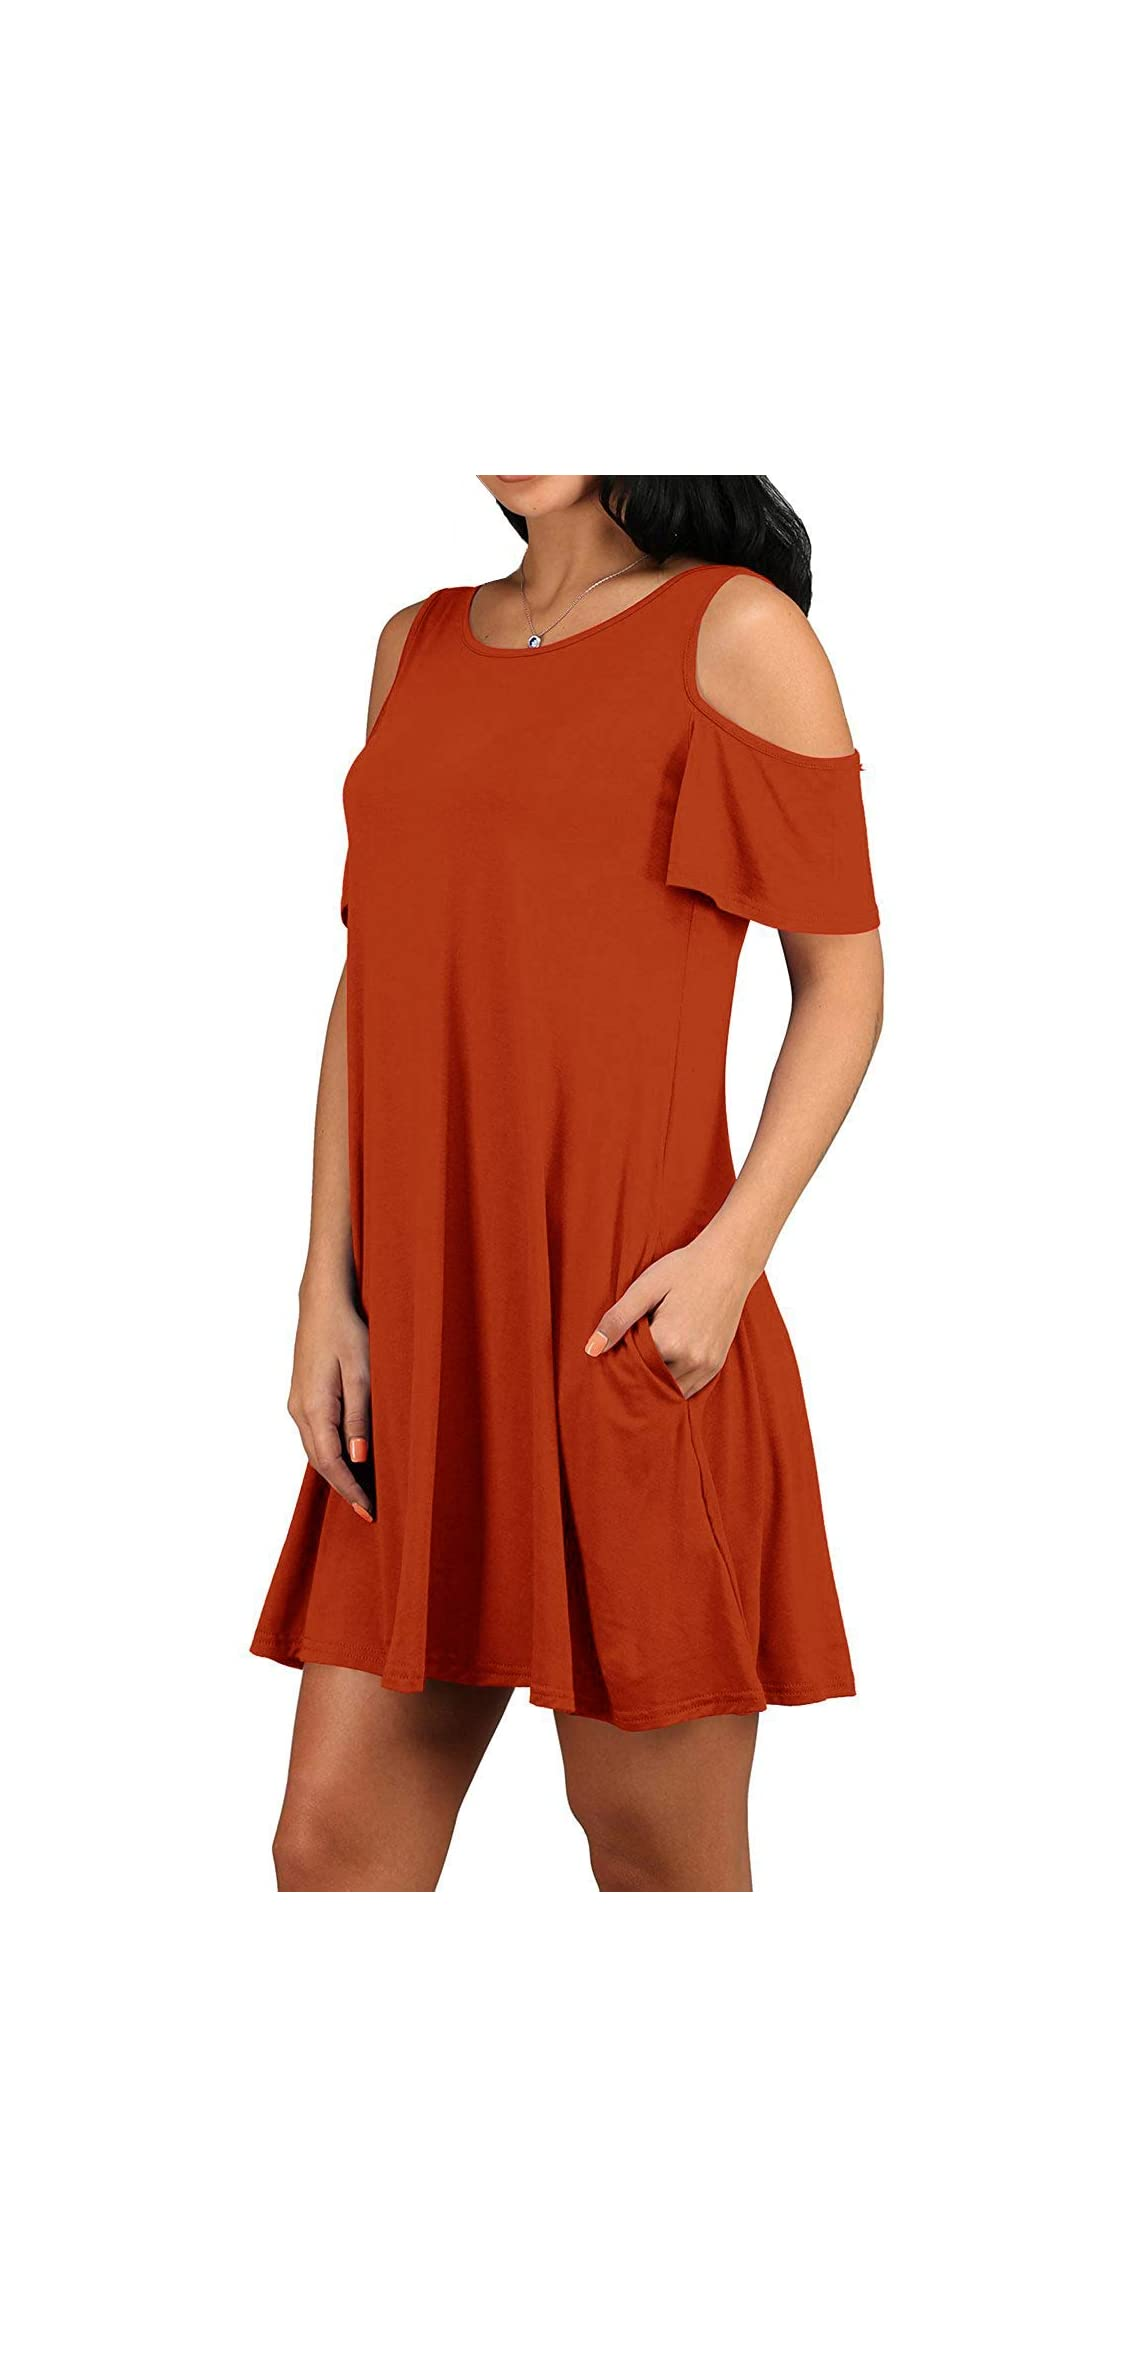 Women Casual Dress Cold Shoulder Tunic Top Dress With